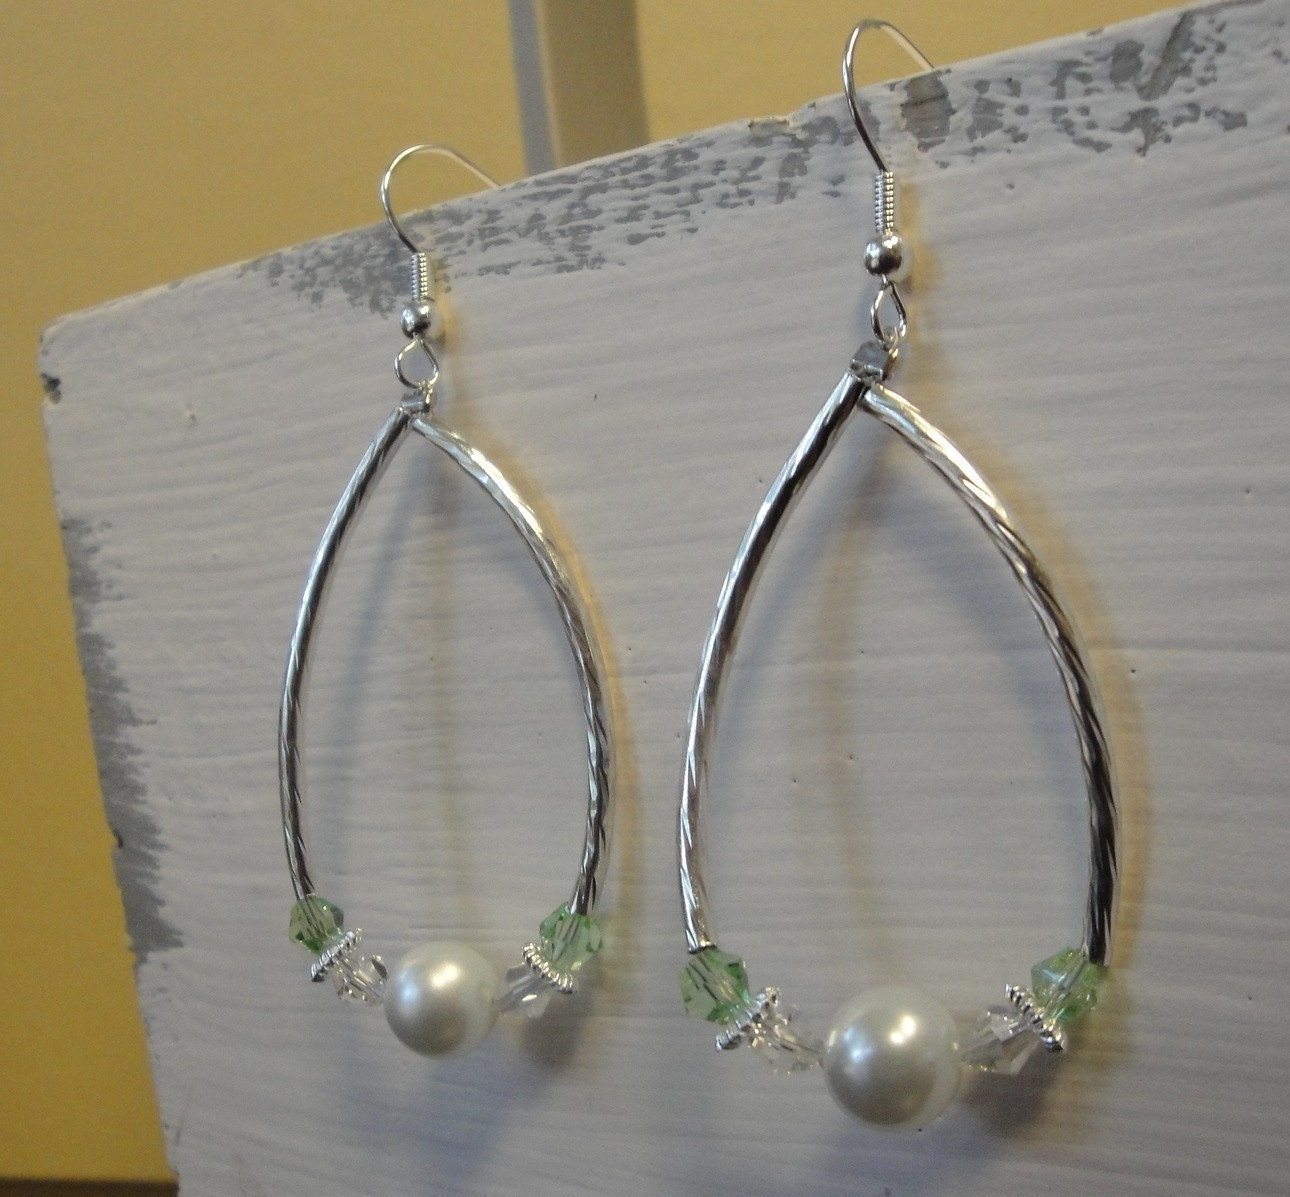 ON SALE Fancy Pearl Earrings with a touch of Green